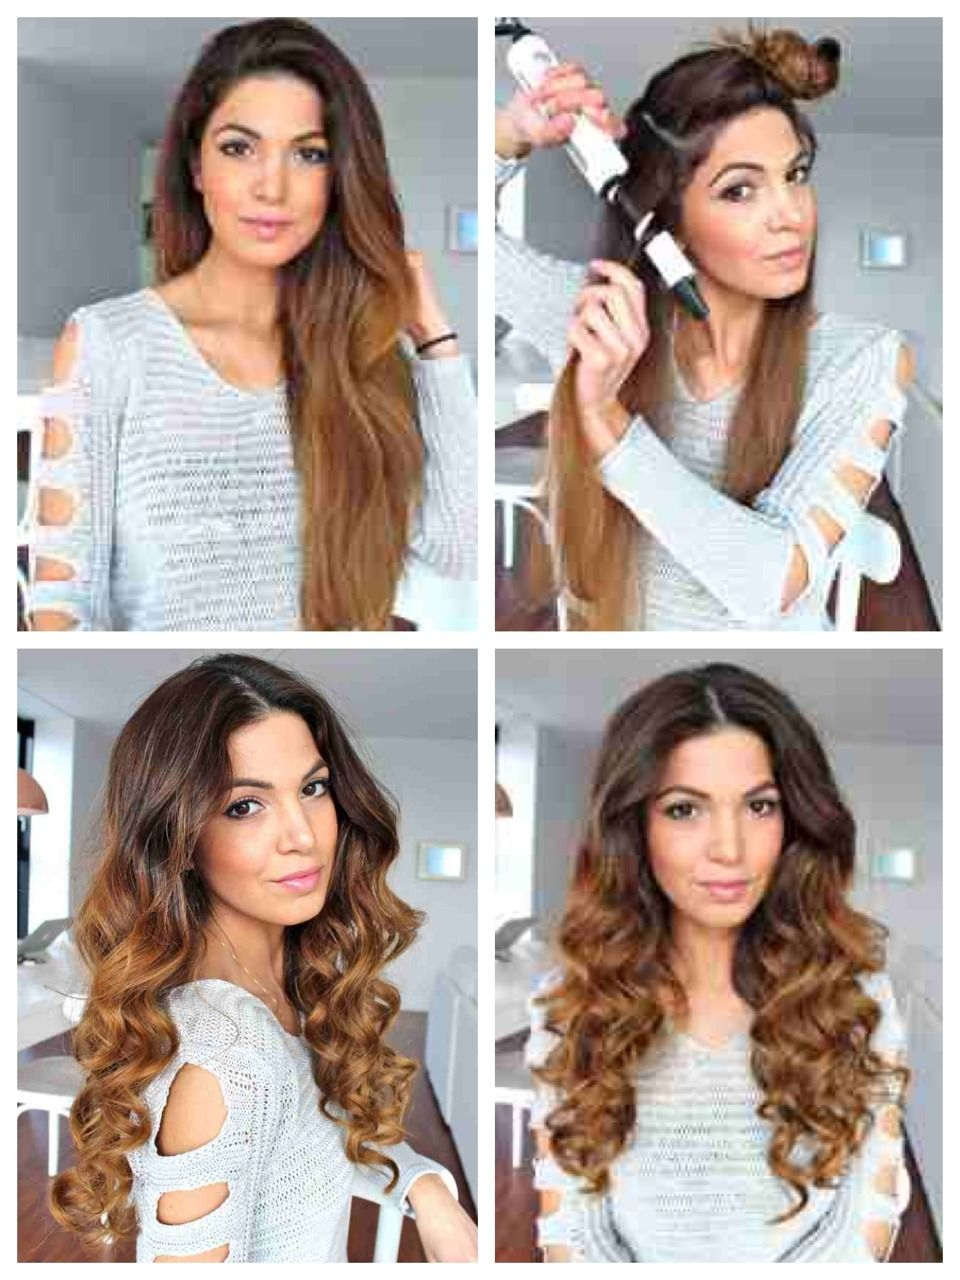 How To Get Wavy Curls Click For Full How To Morp Can You Do This To Me Lindsey Grande Grande Grande Grande Grande Hair Beauty Hair Styles Hair Inspiration